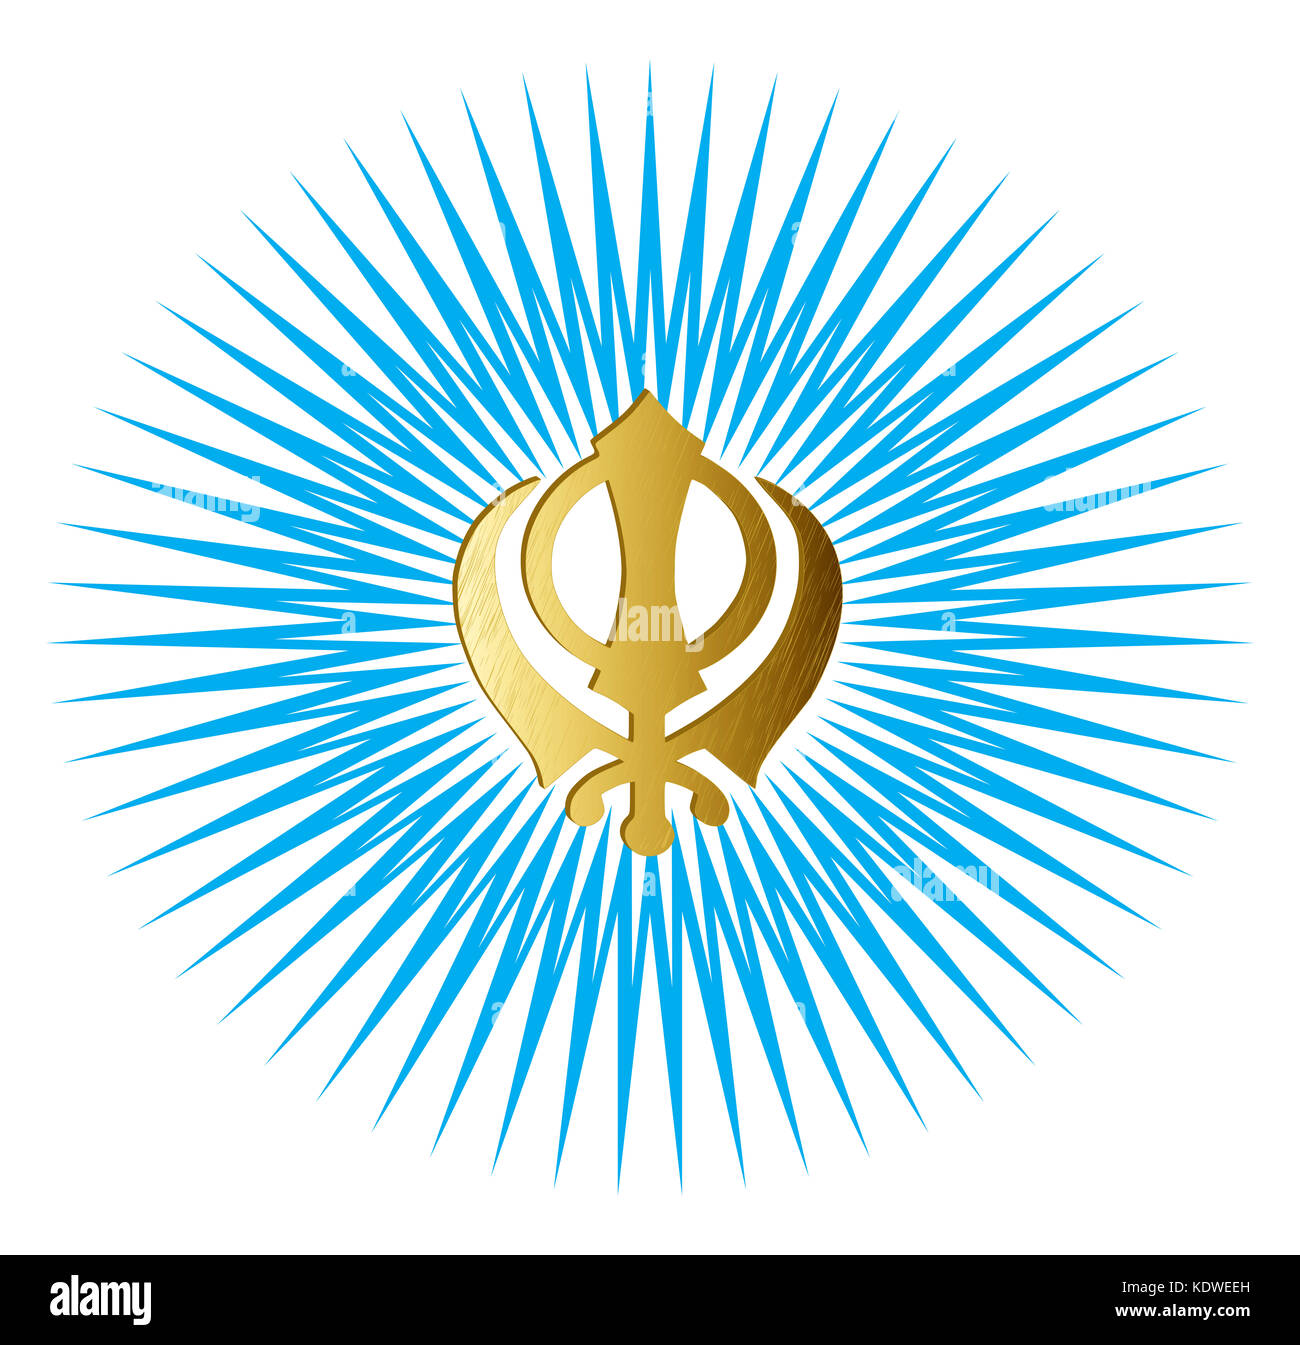 The main symbol of Sikhism – sign Khanda made of gold metal. Gradient blue rays, isolated, illustration - Stock Image